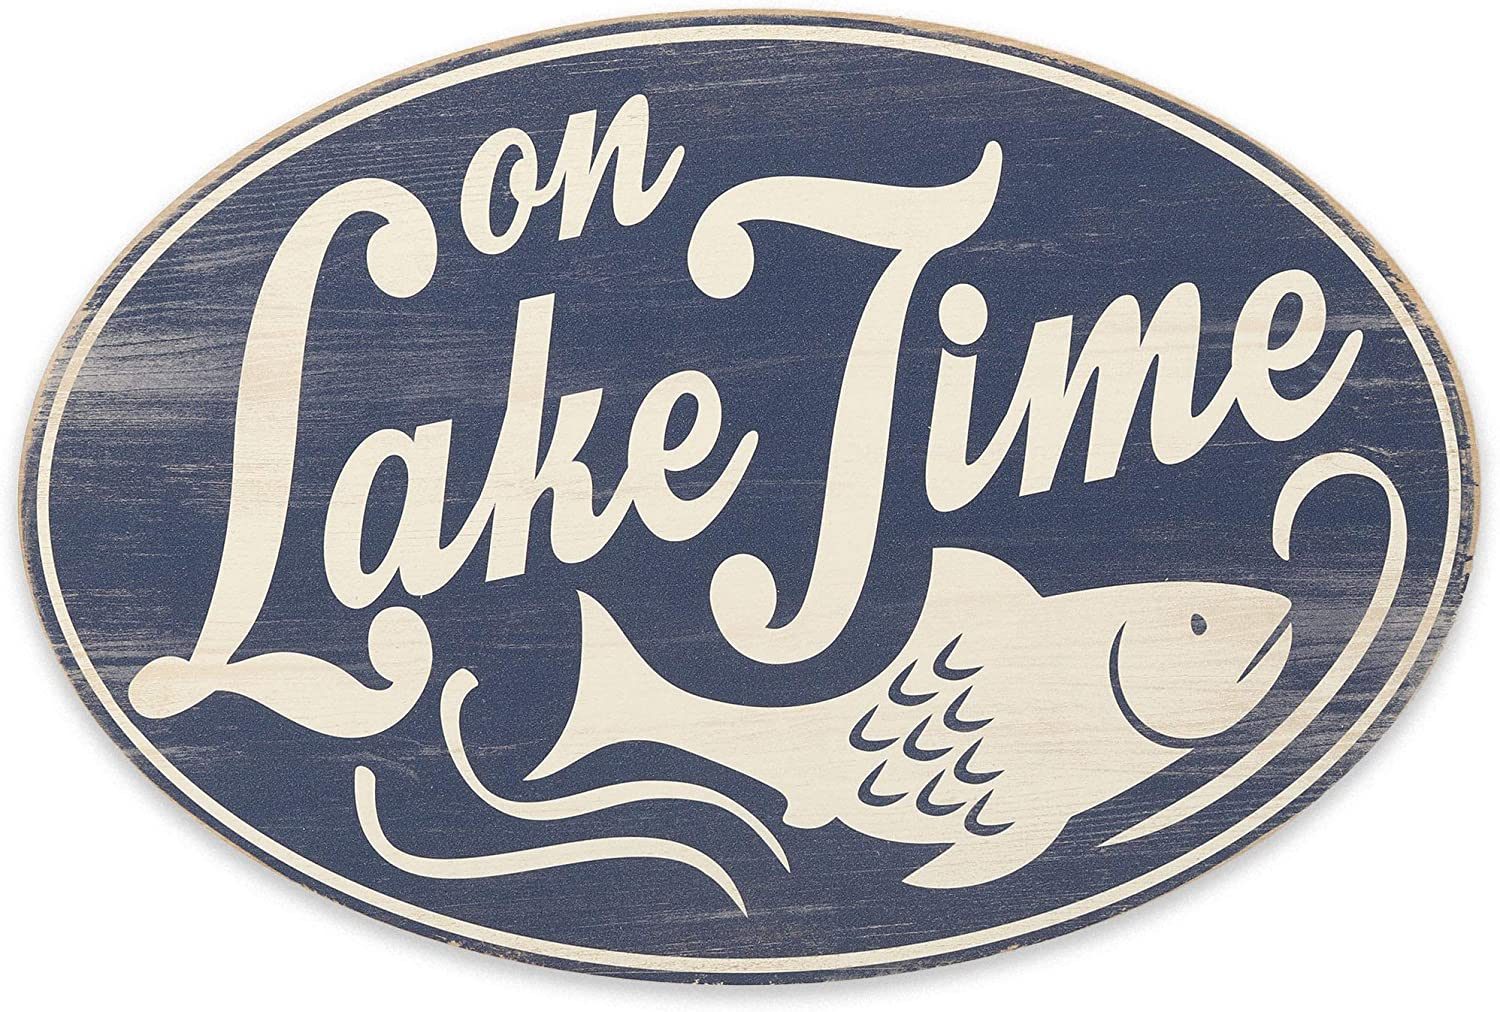 Open Road Brands On Lake Time Wood Wall Decor for Lake House, Man Cave, or Living Room